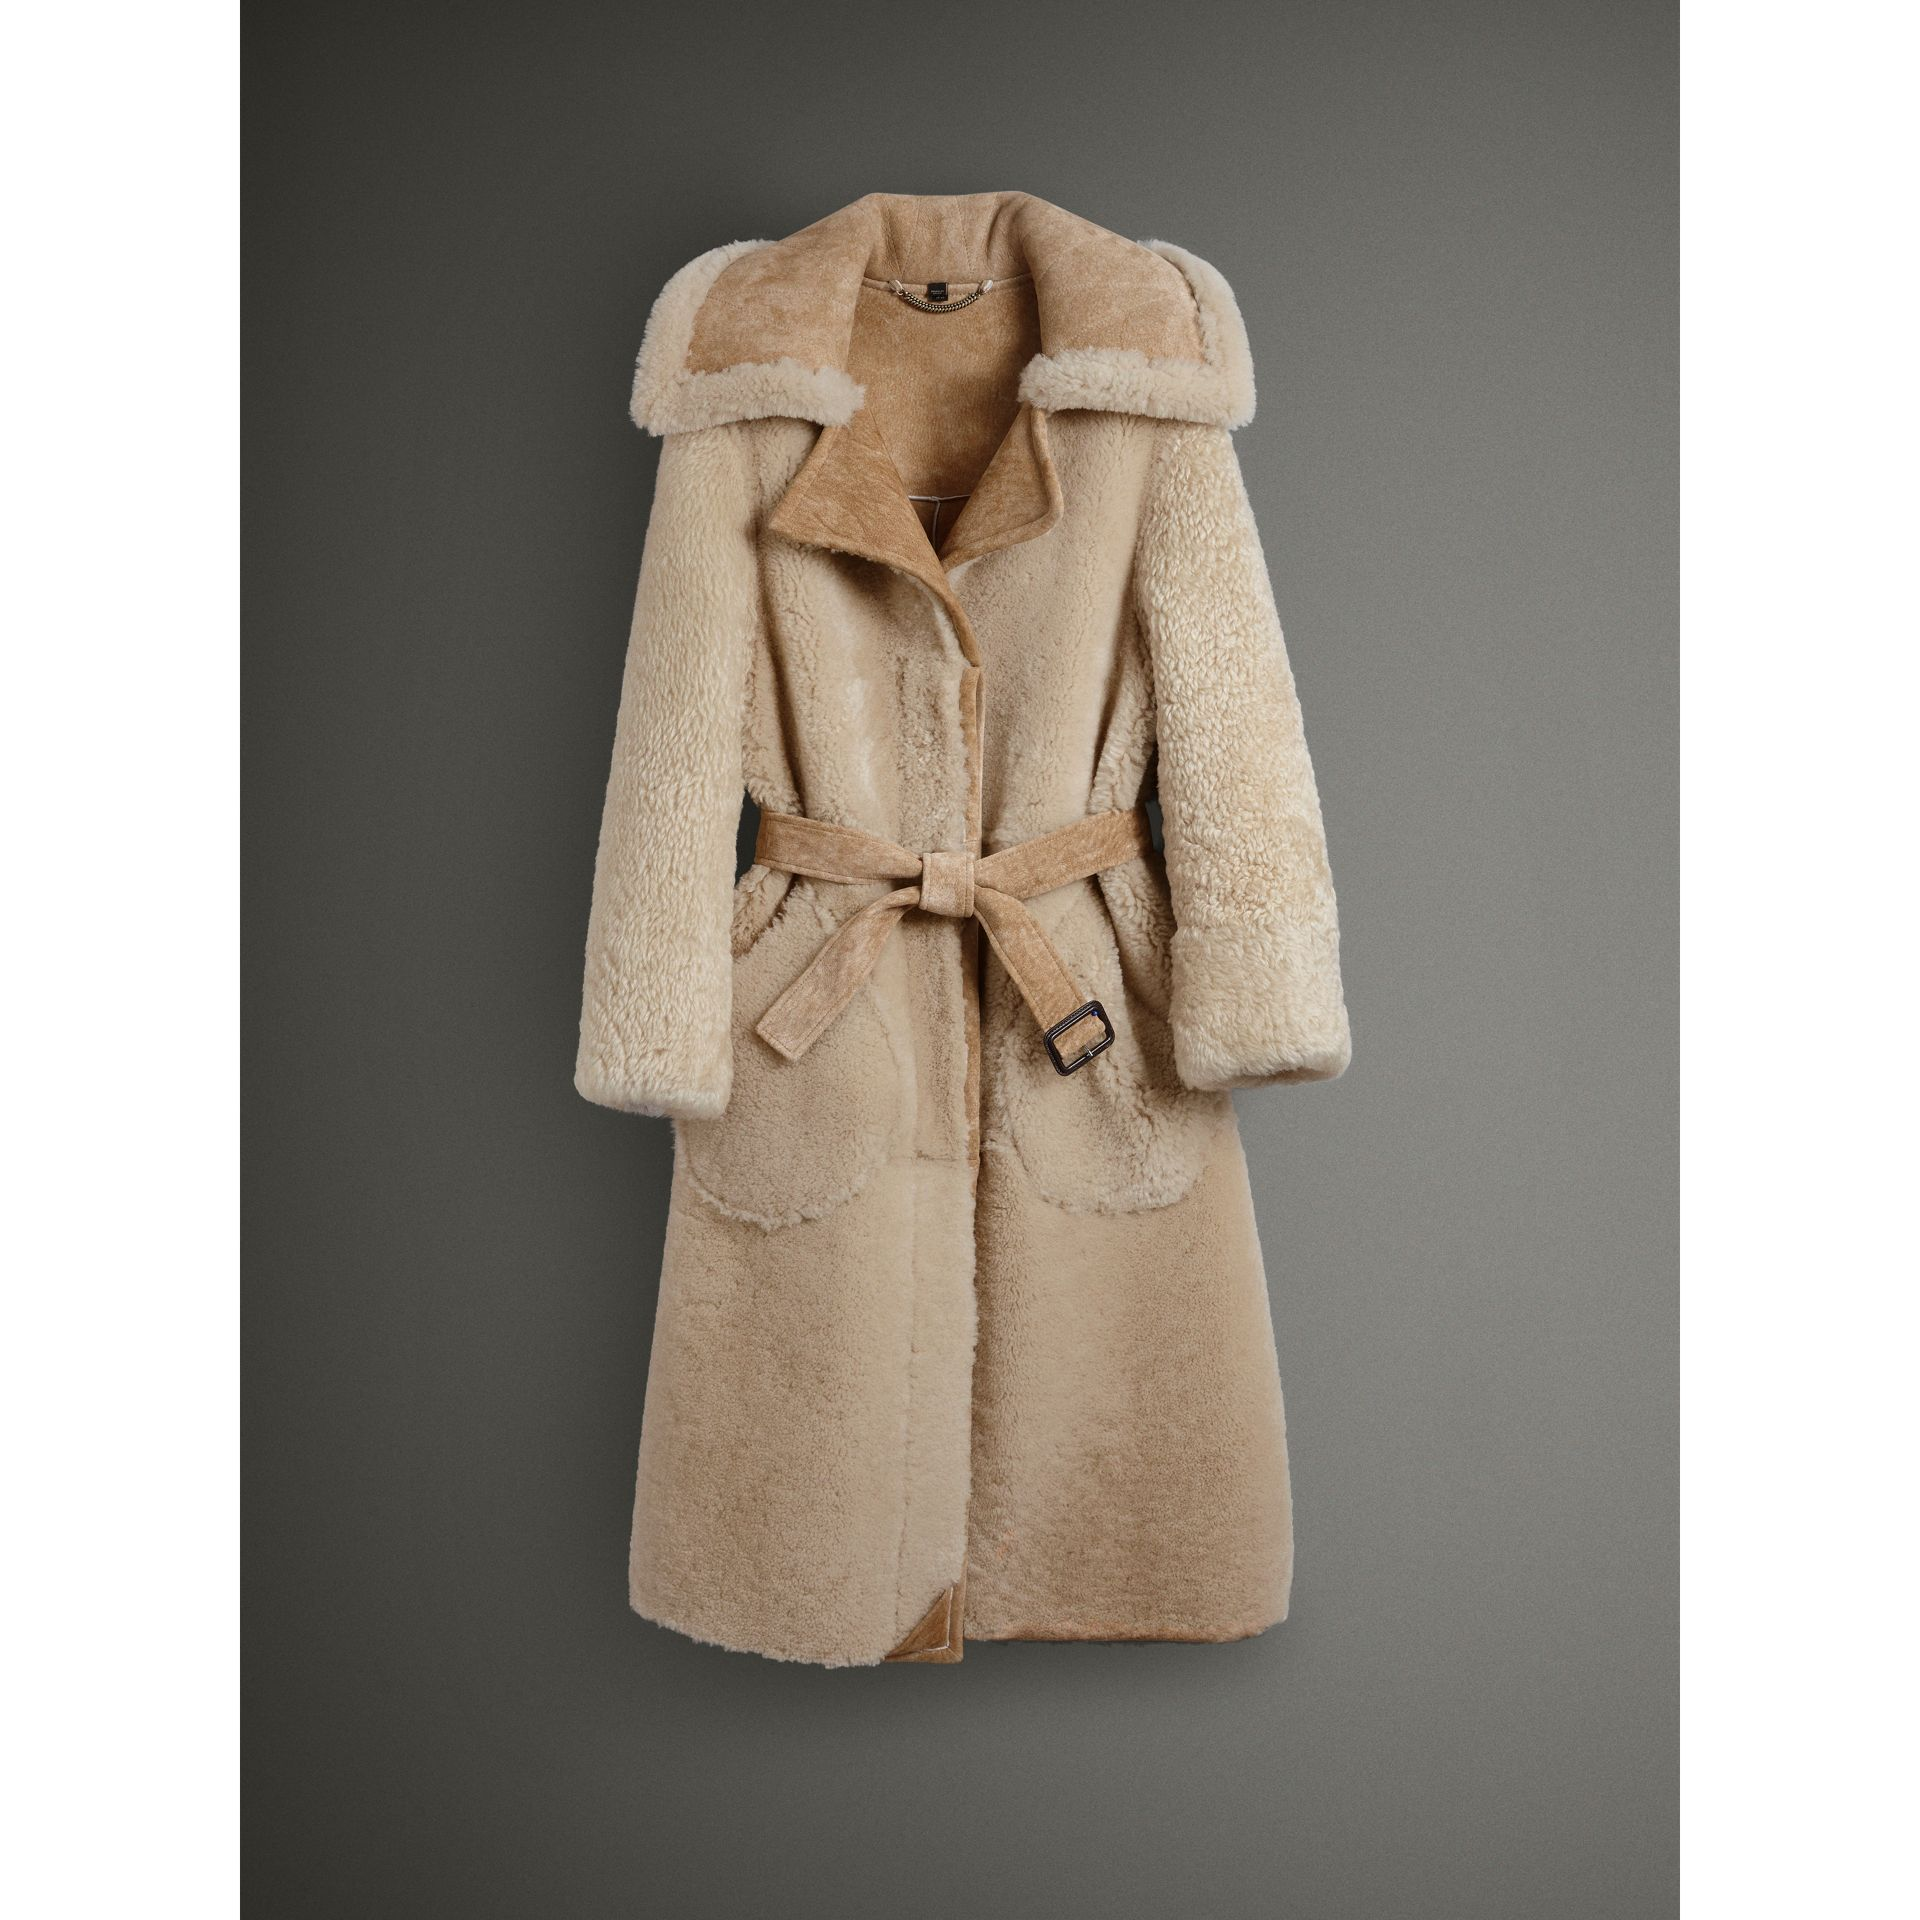 Shearling Oversized Belted Coat in Camel/off White - Women | Burberry Singapore - gallery image 4